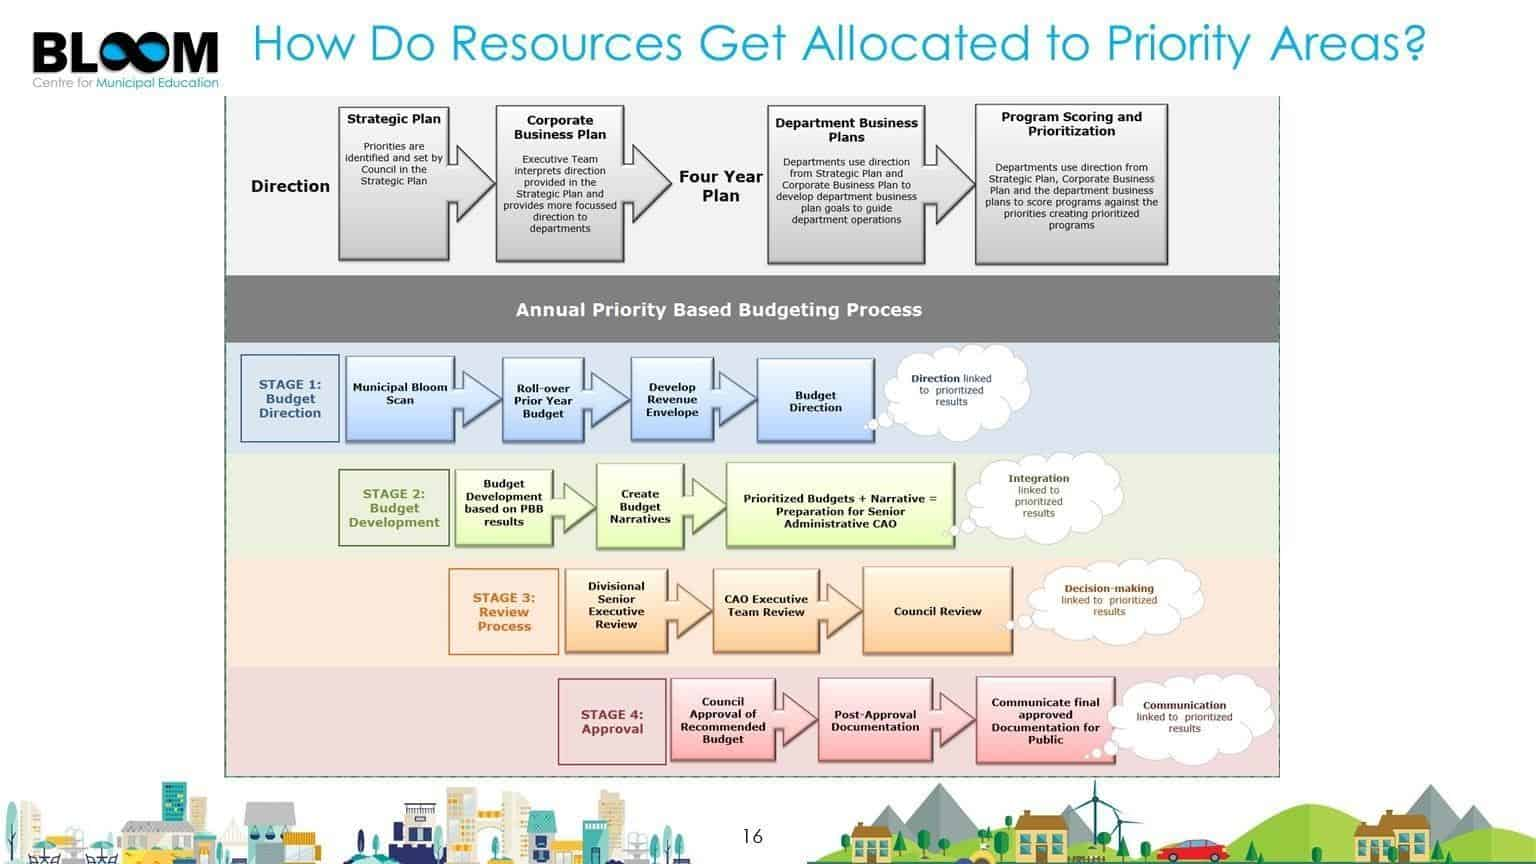 How do resources get allocated to priority areas?